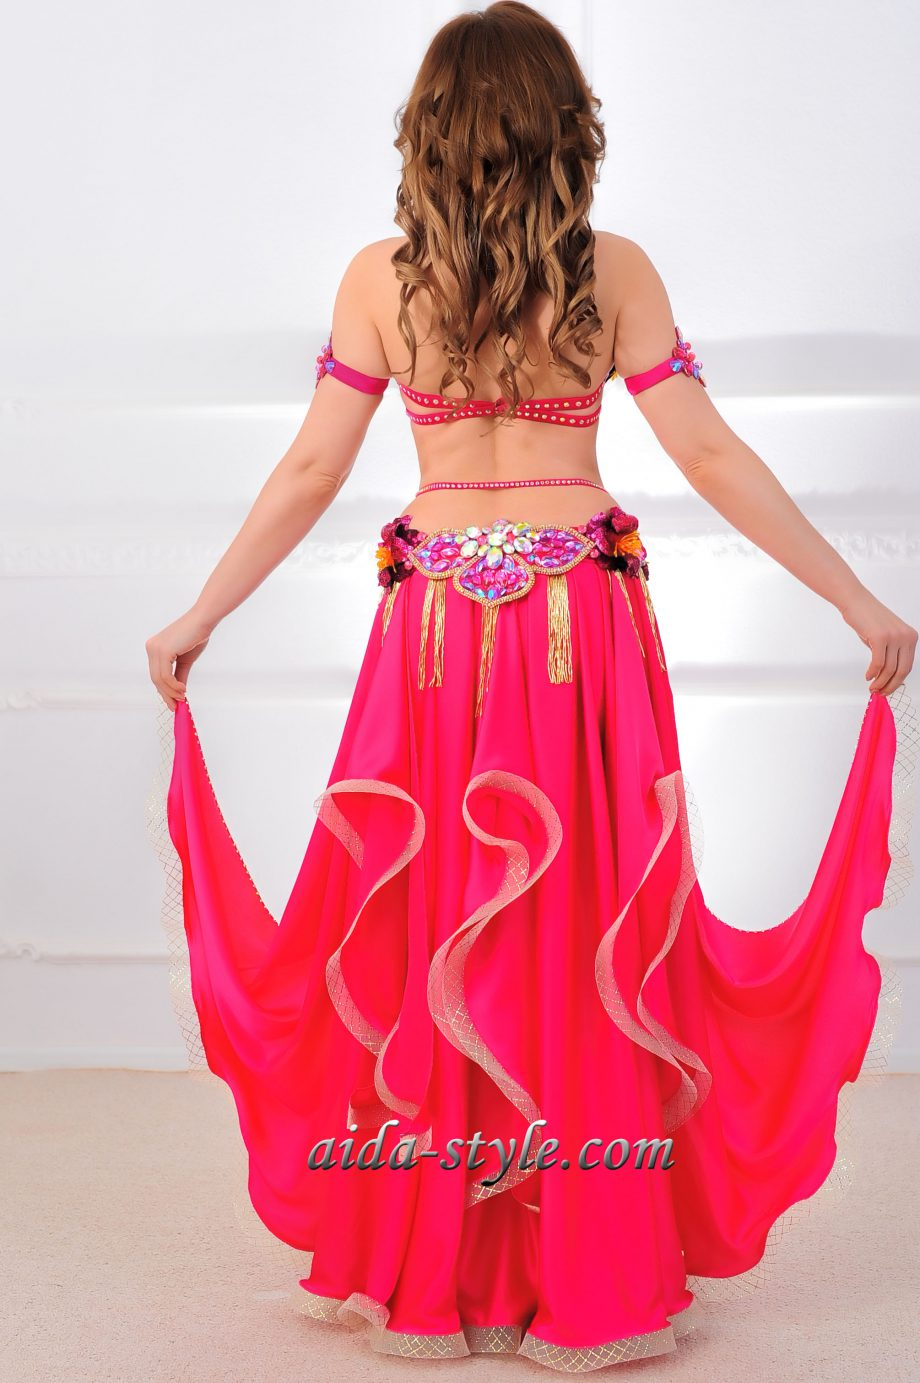 belly dance costume professional pink